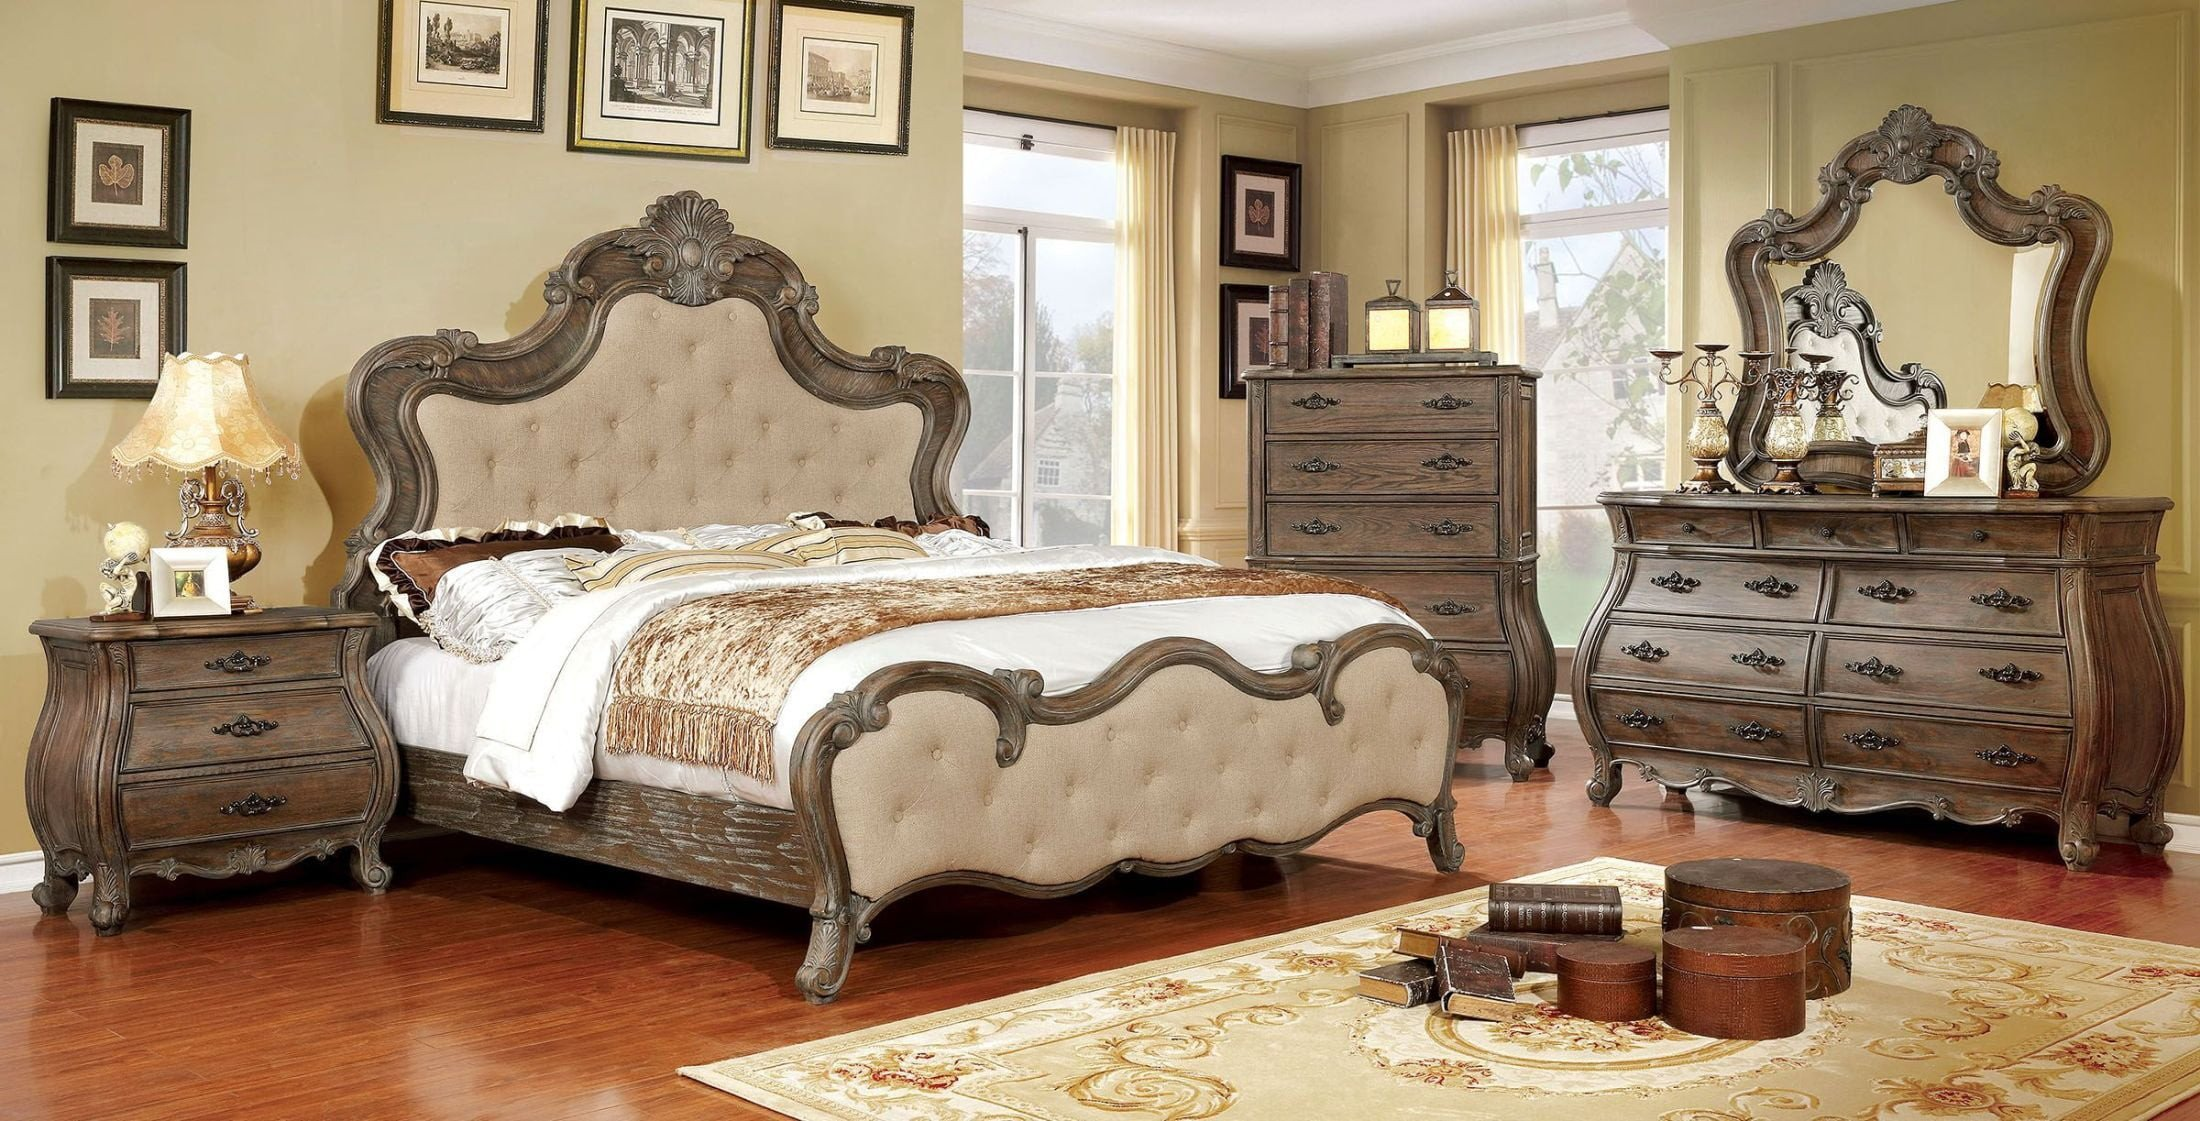 Acme Furniture Bedroom Set Luxury Cursa Rustic Natural Panel Bedroom Set